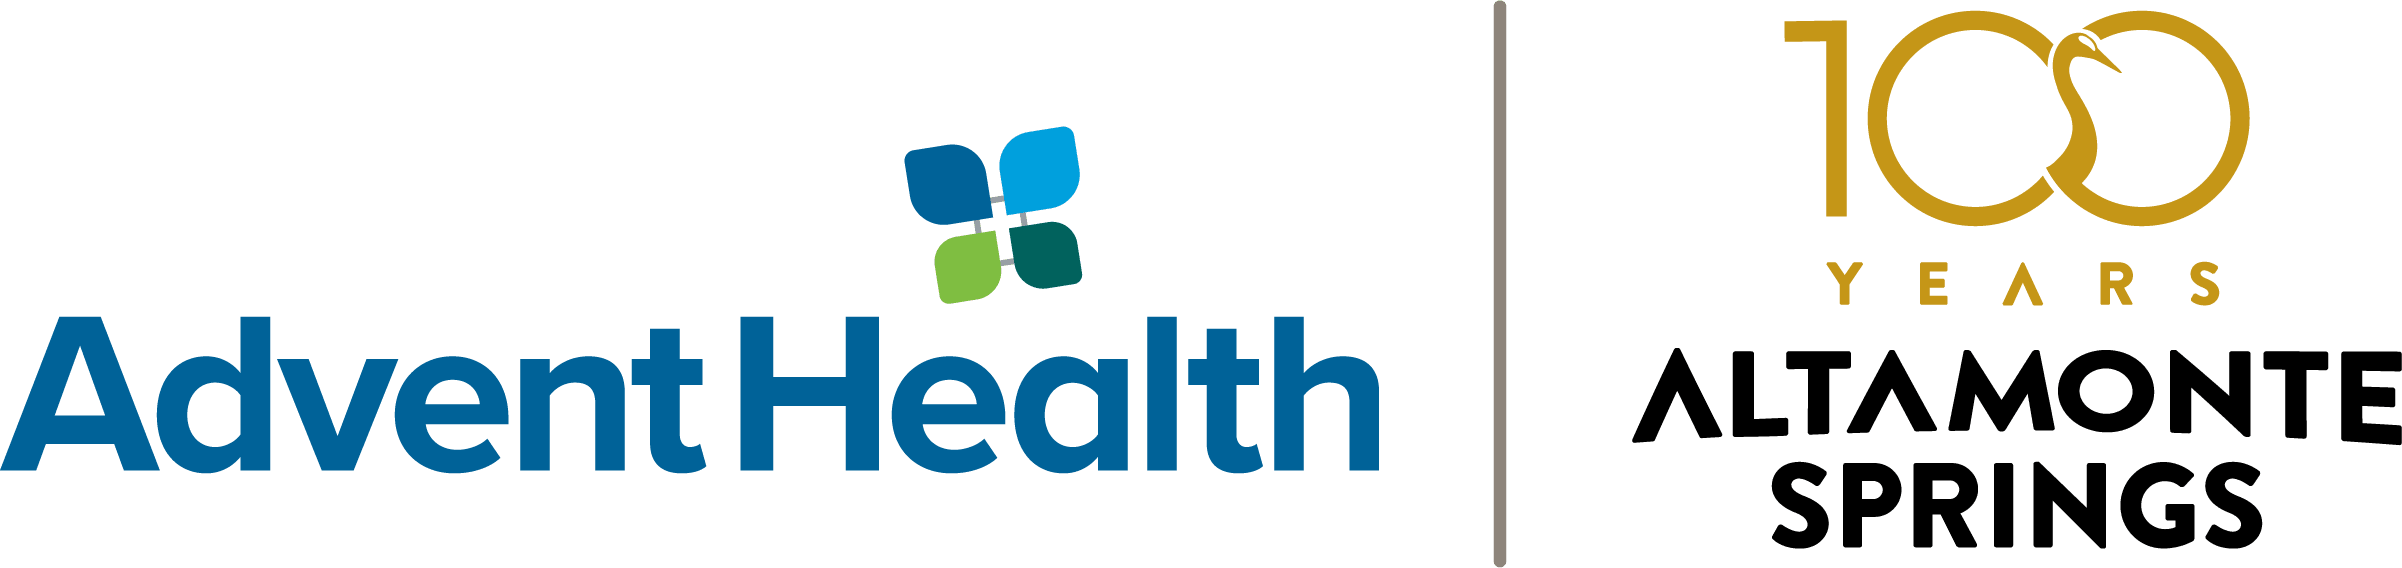 Advent Health and Altamonte Springs Logos